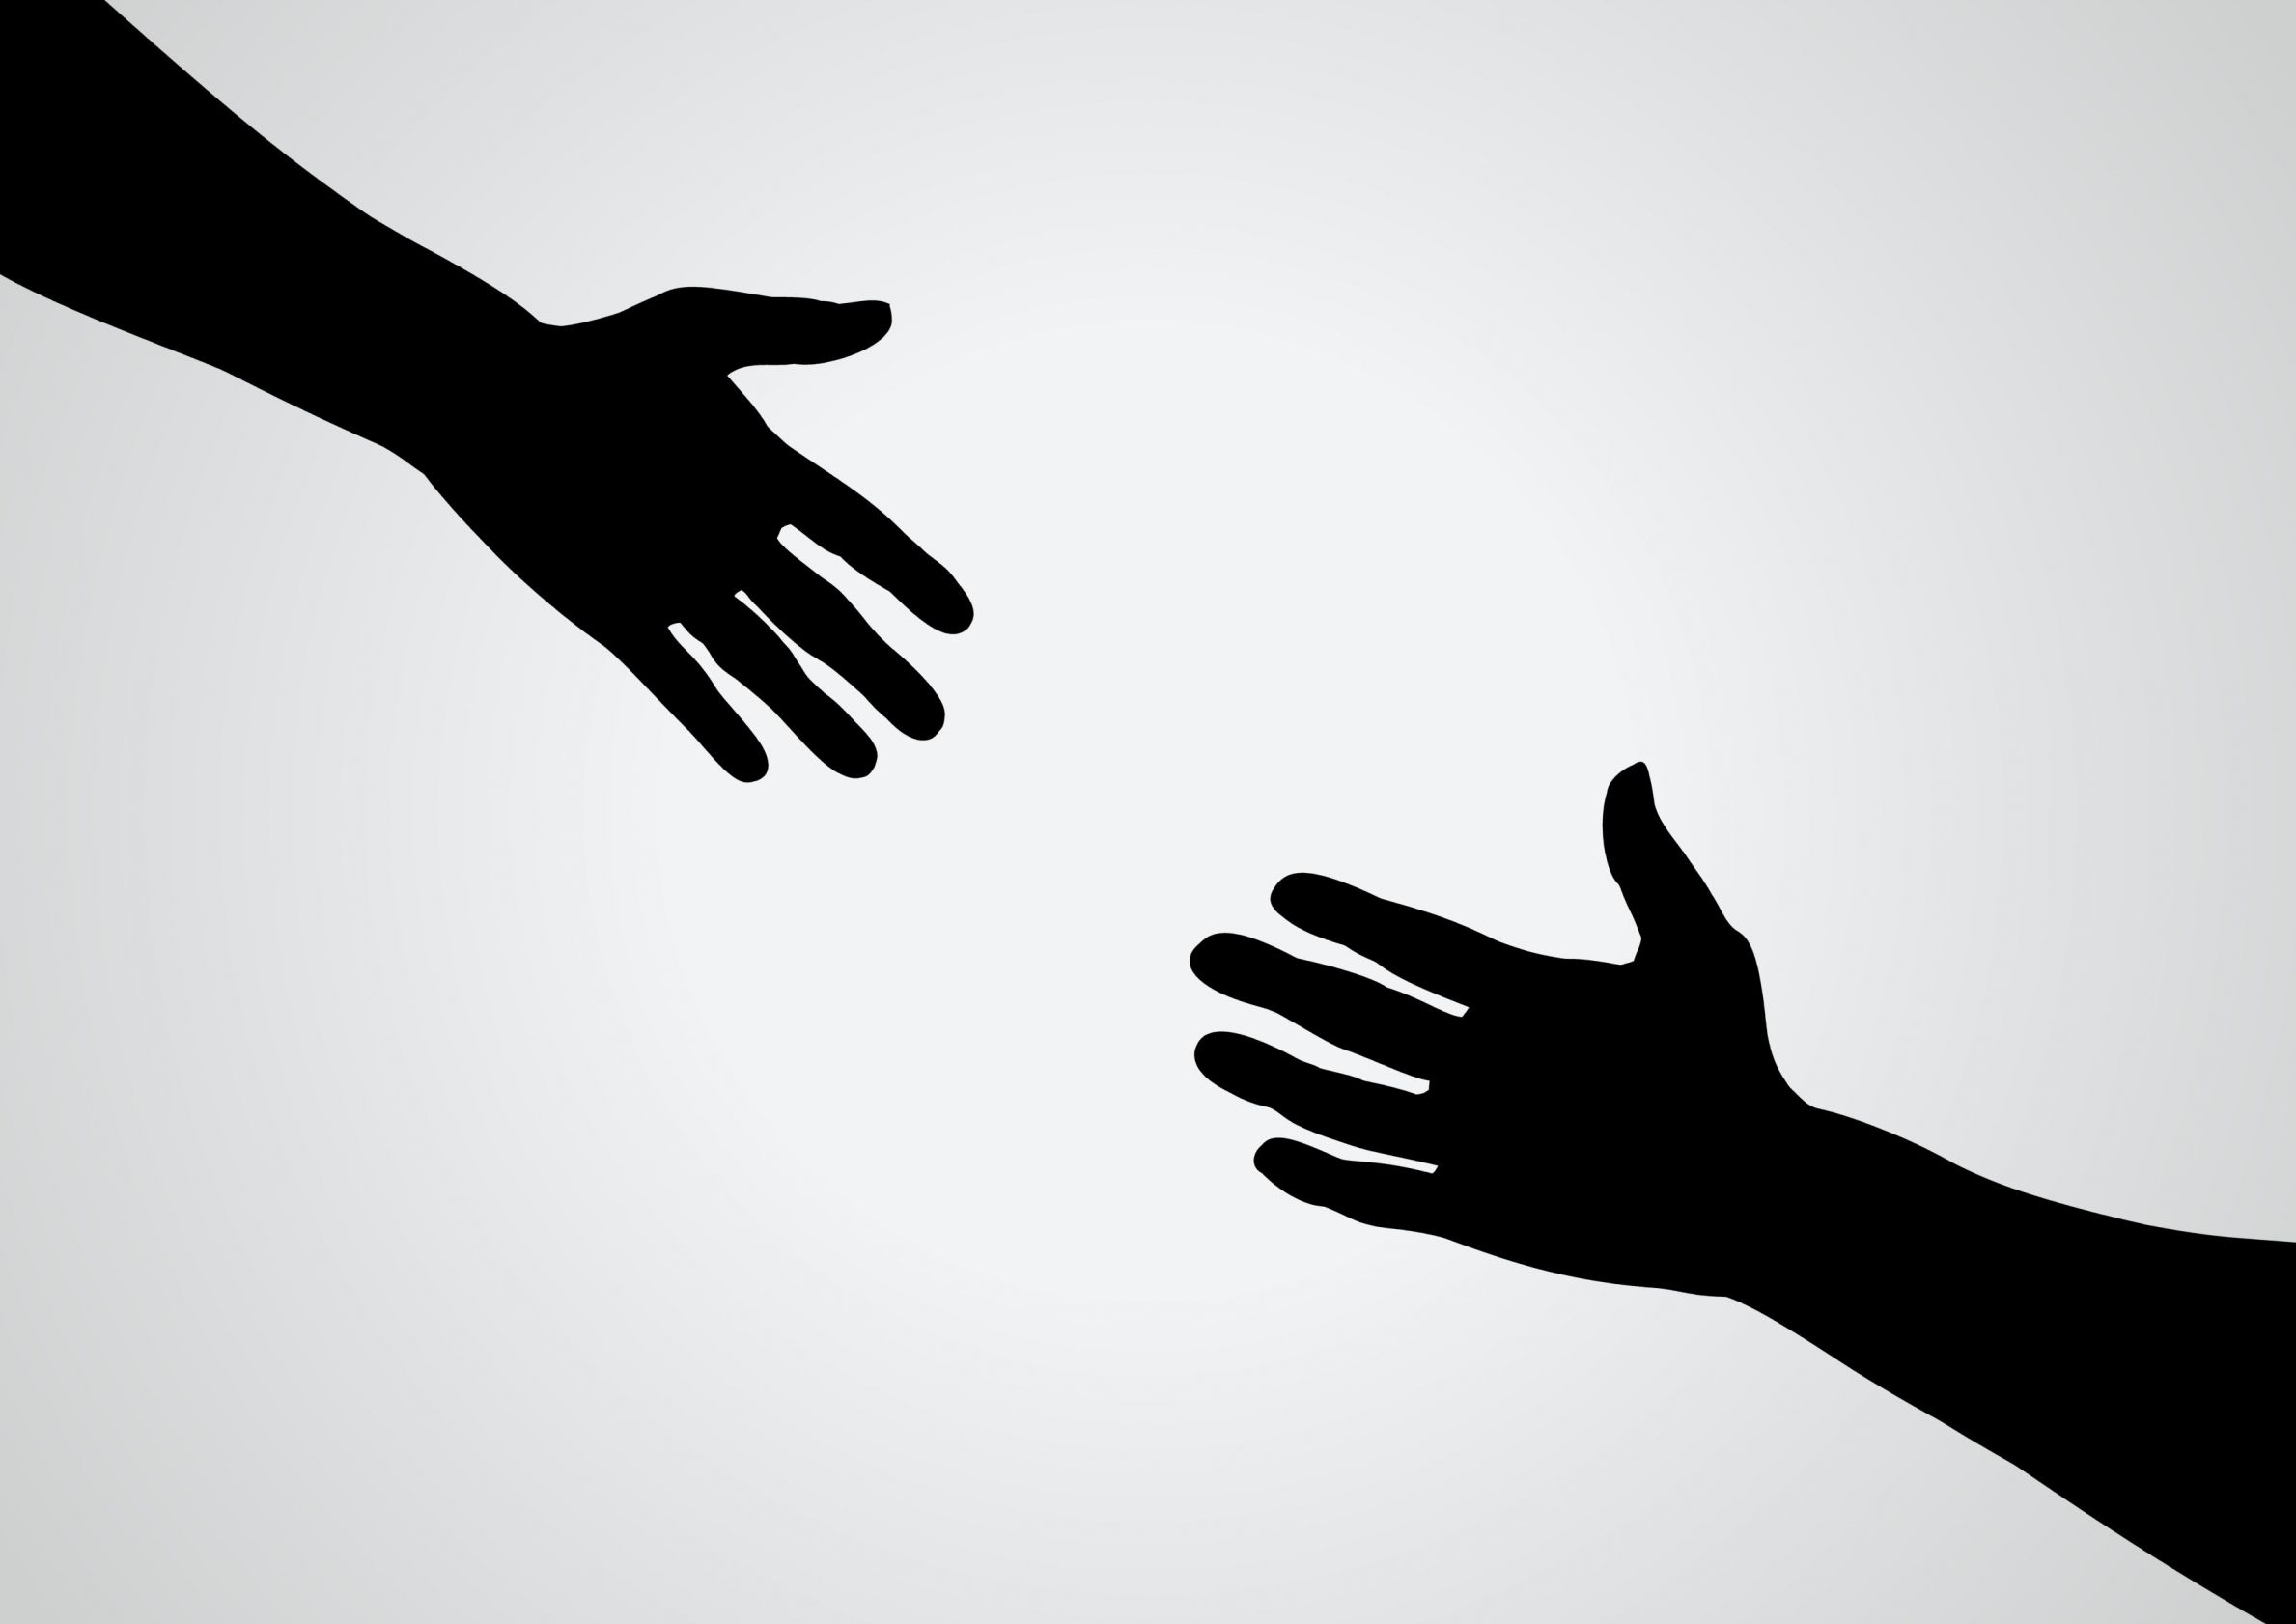 helping hands - Services Of an IT Support Company